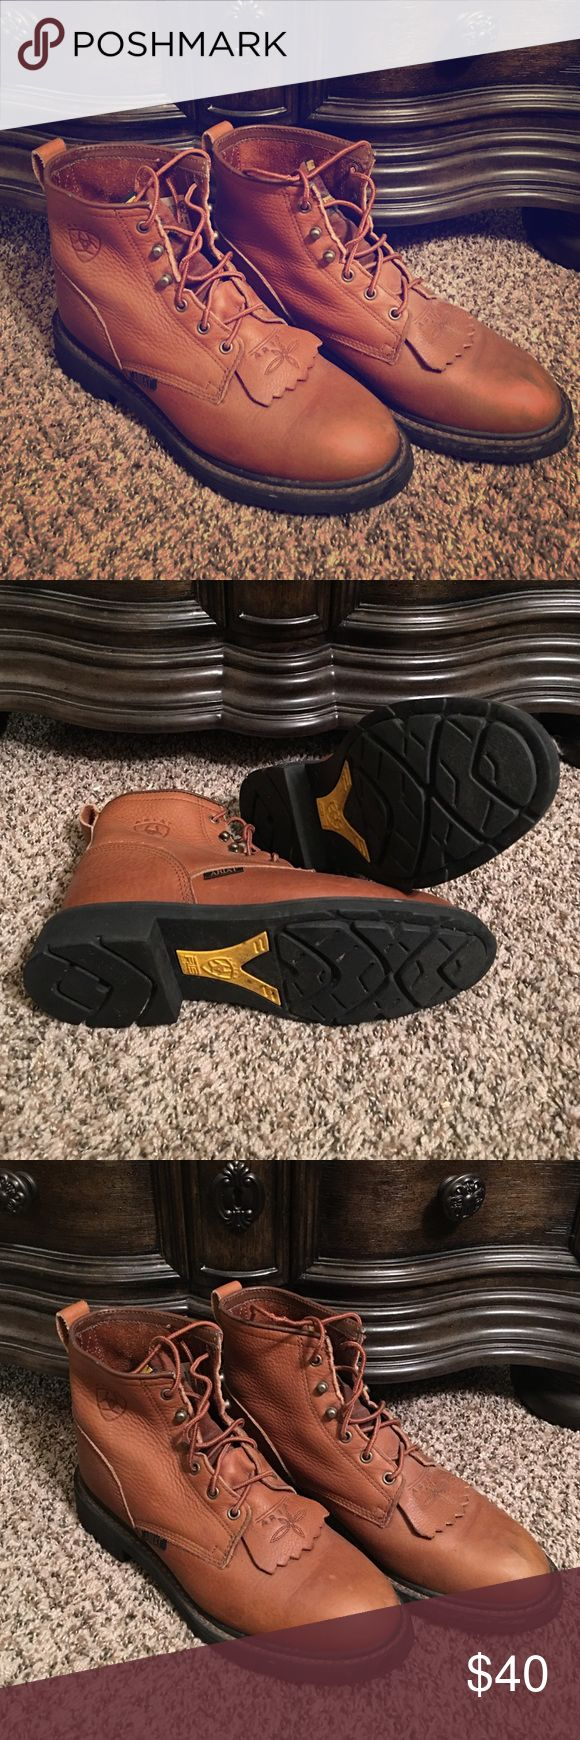 Women's Ariat Work Boots Size 9.5 Great pair of Ariat lace up boots, Size 9.5.  I wore these boots gently only a couple times.  They are super sturdy and in very good condition.  Note slight scuffing on toe of left shoe (pictured). Ariat Shoes Lace Up Boots